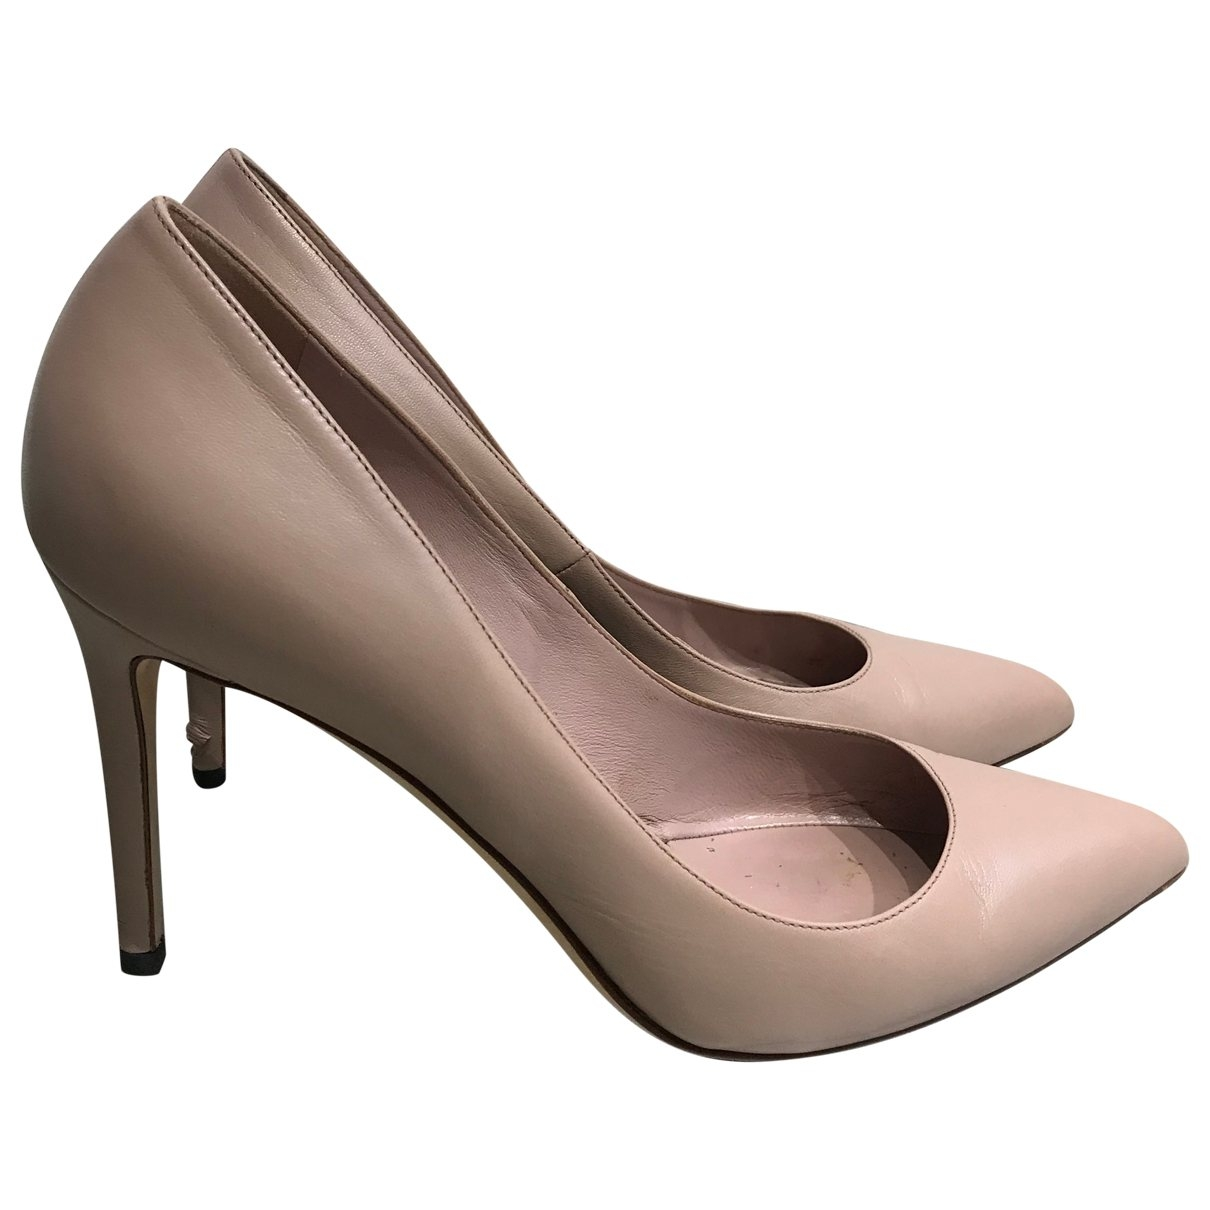 Gucci \N Pink Leather Heels for Women 39 EU